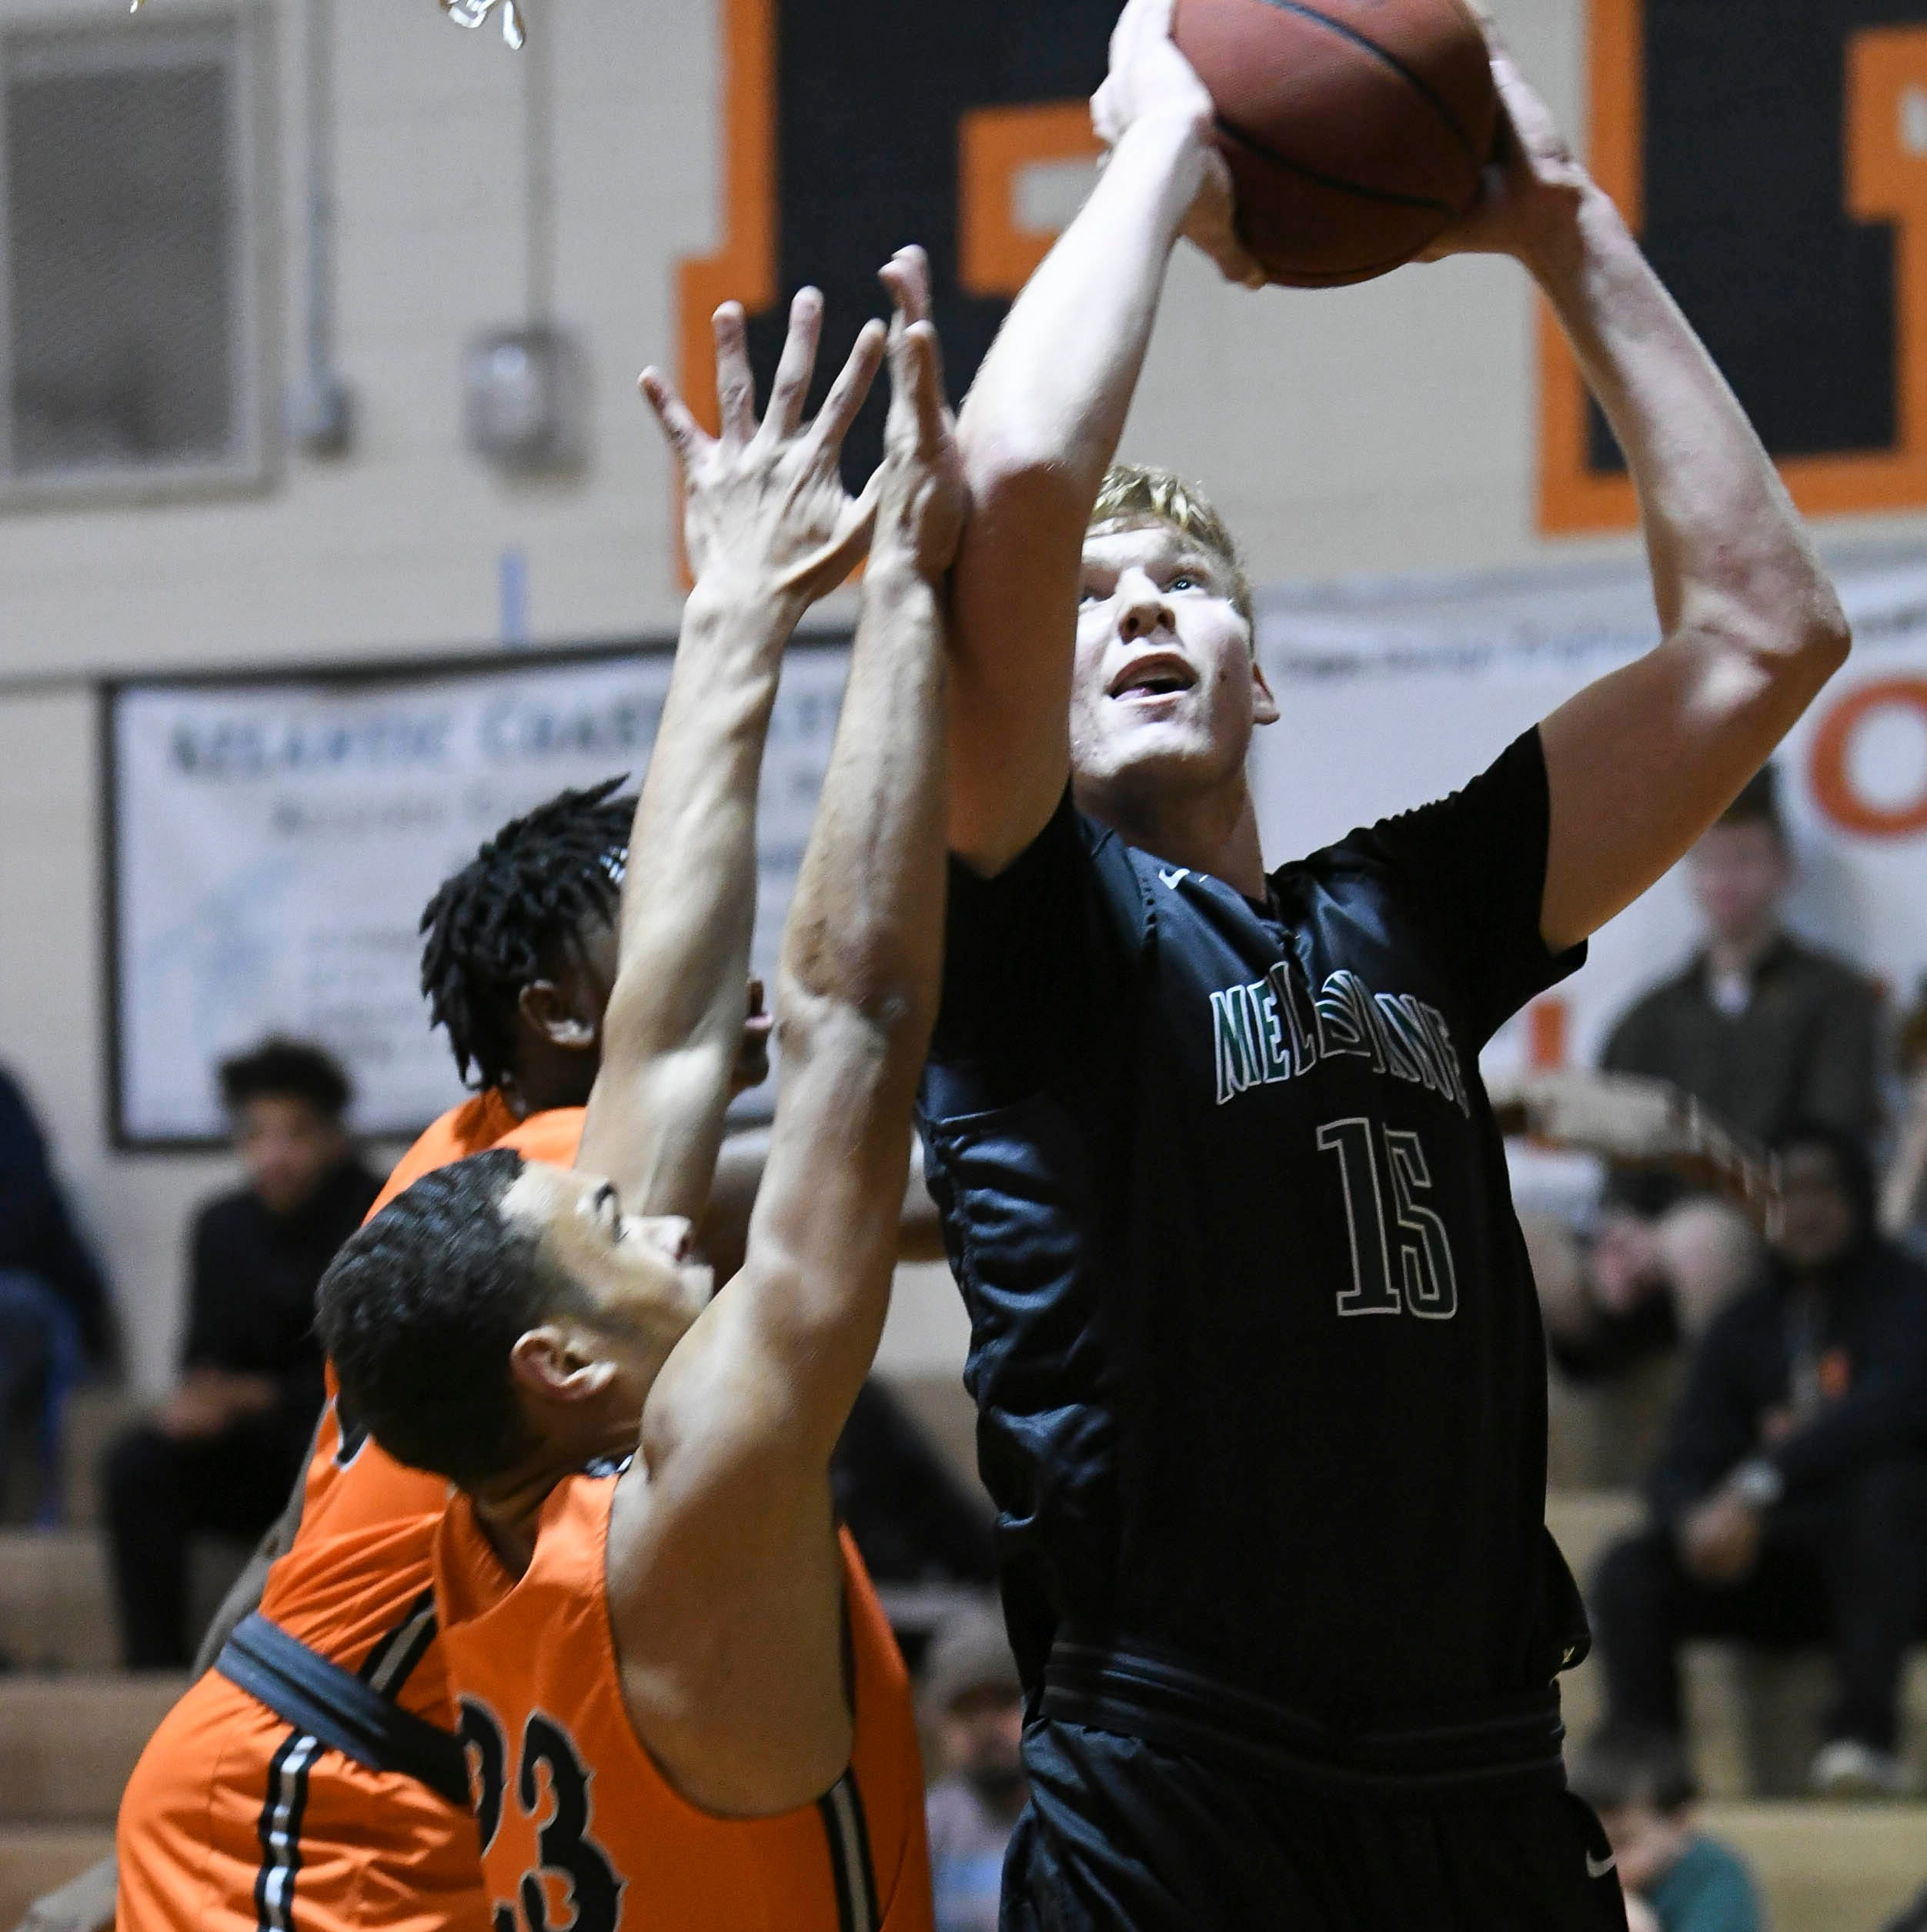 Melbourne High's Max Fielder voted top 8A boys basketball player